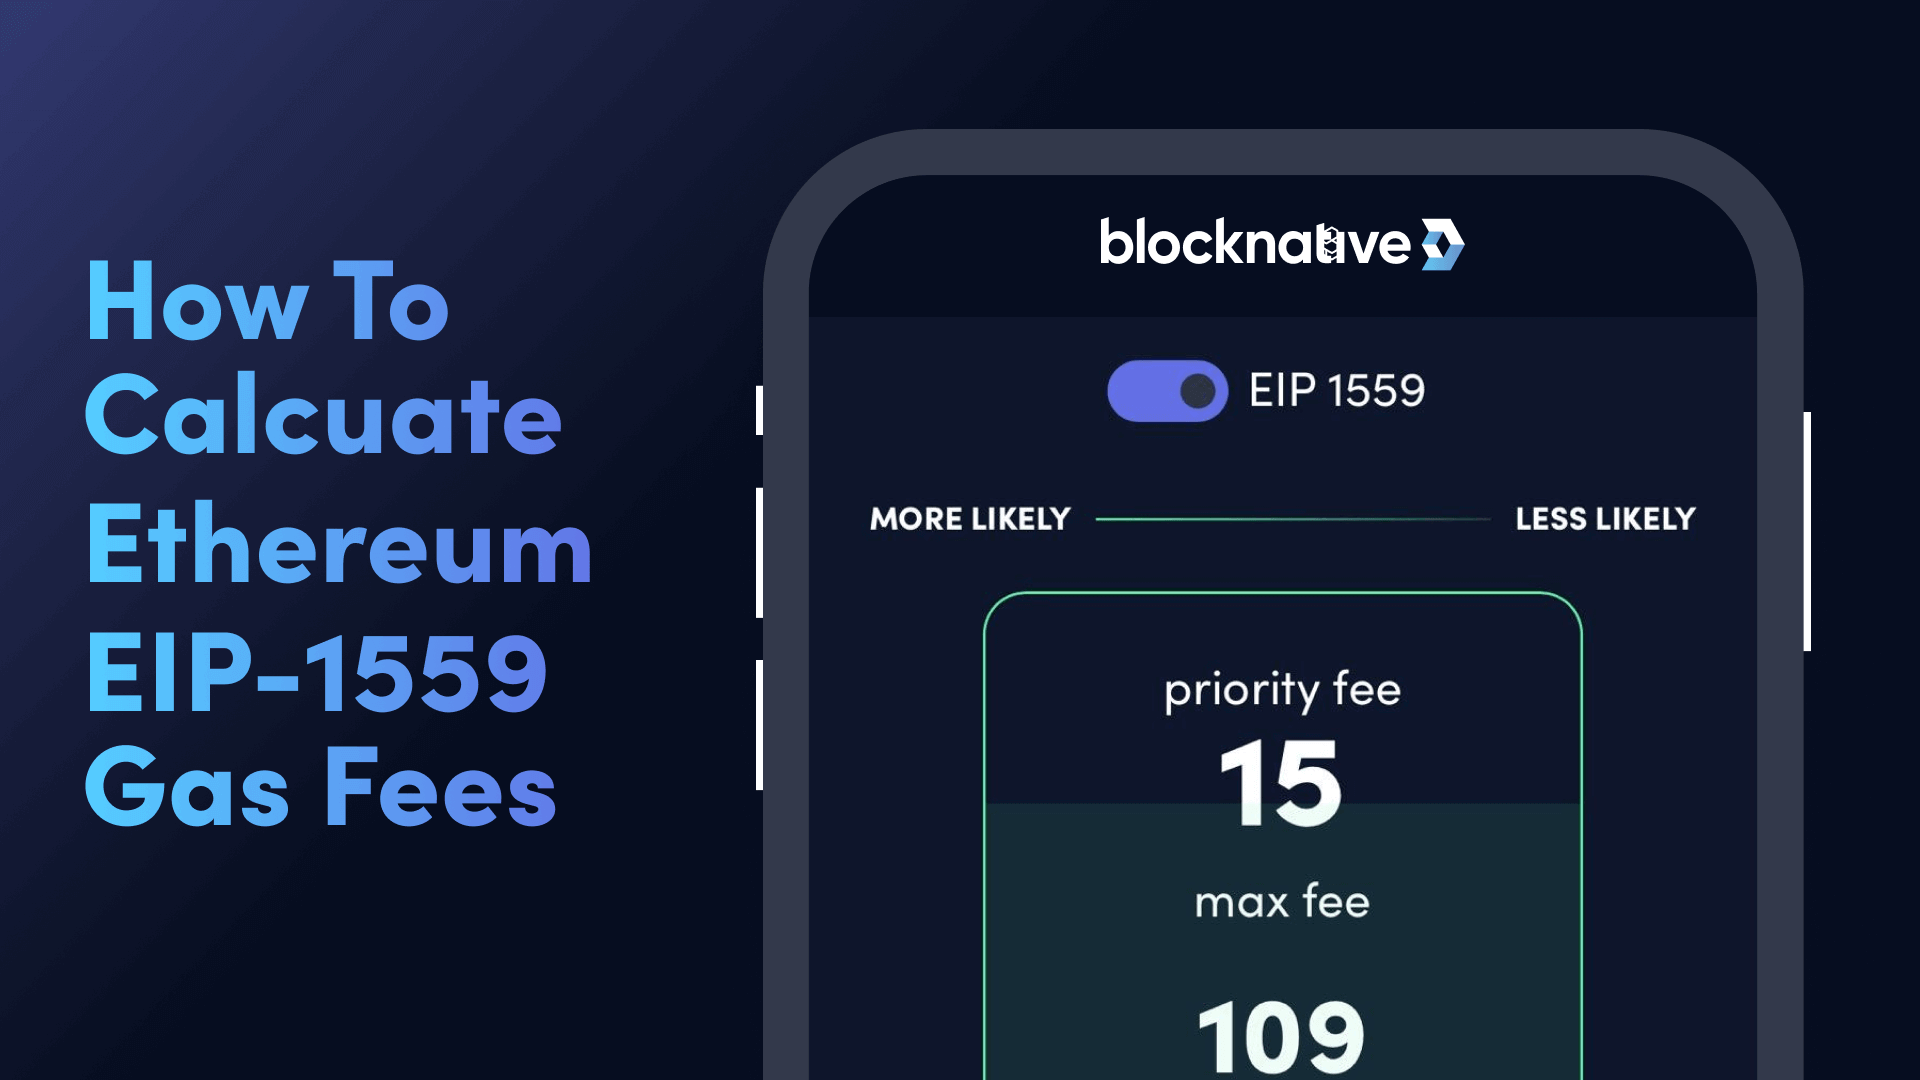 a-definitive-guide-to-ethereum-eip-1559-gas-fee-calculations:-base-fee,-priority-fee,-max-fee